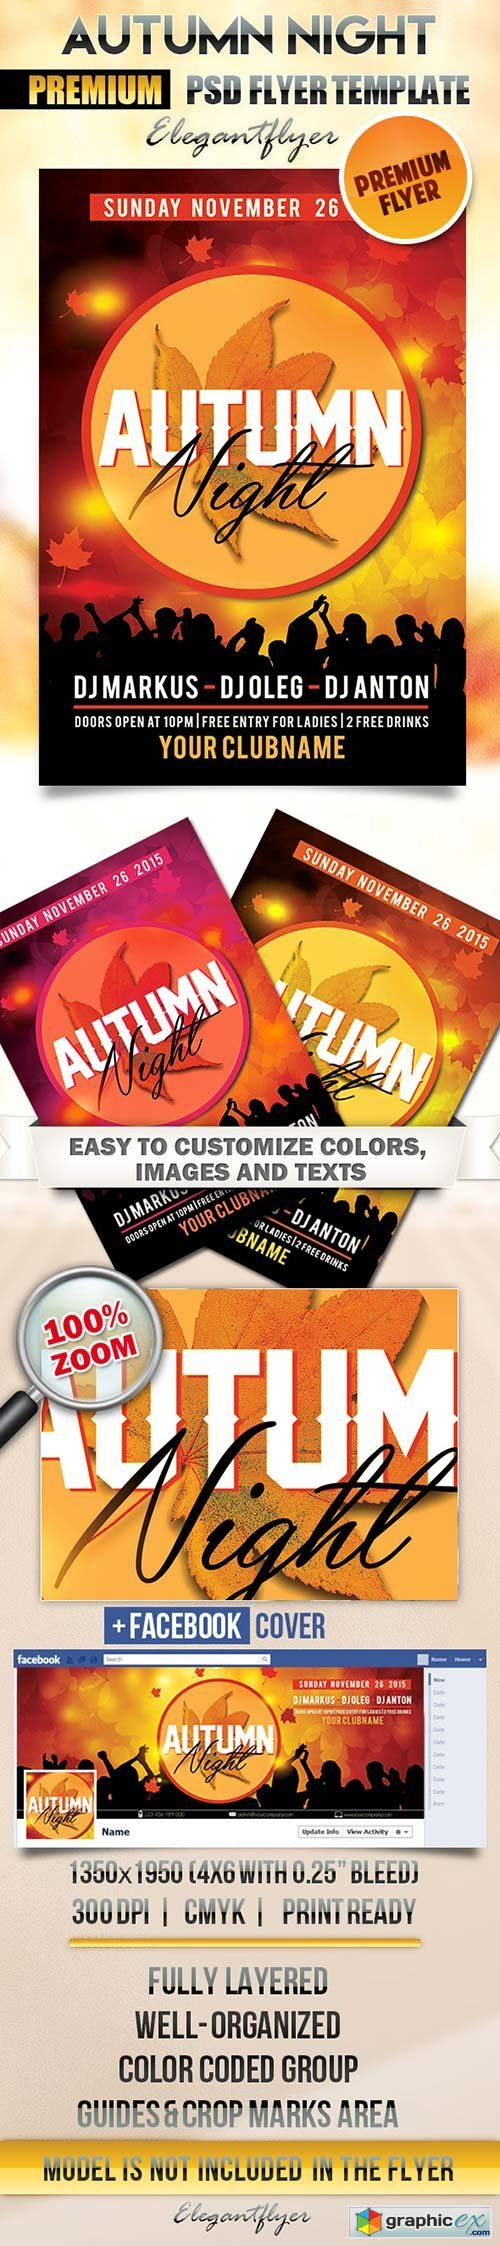 Autumn Night Flyer PSD Template + Facebook Cover